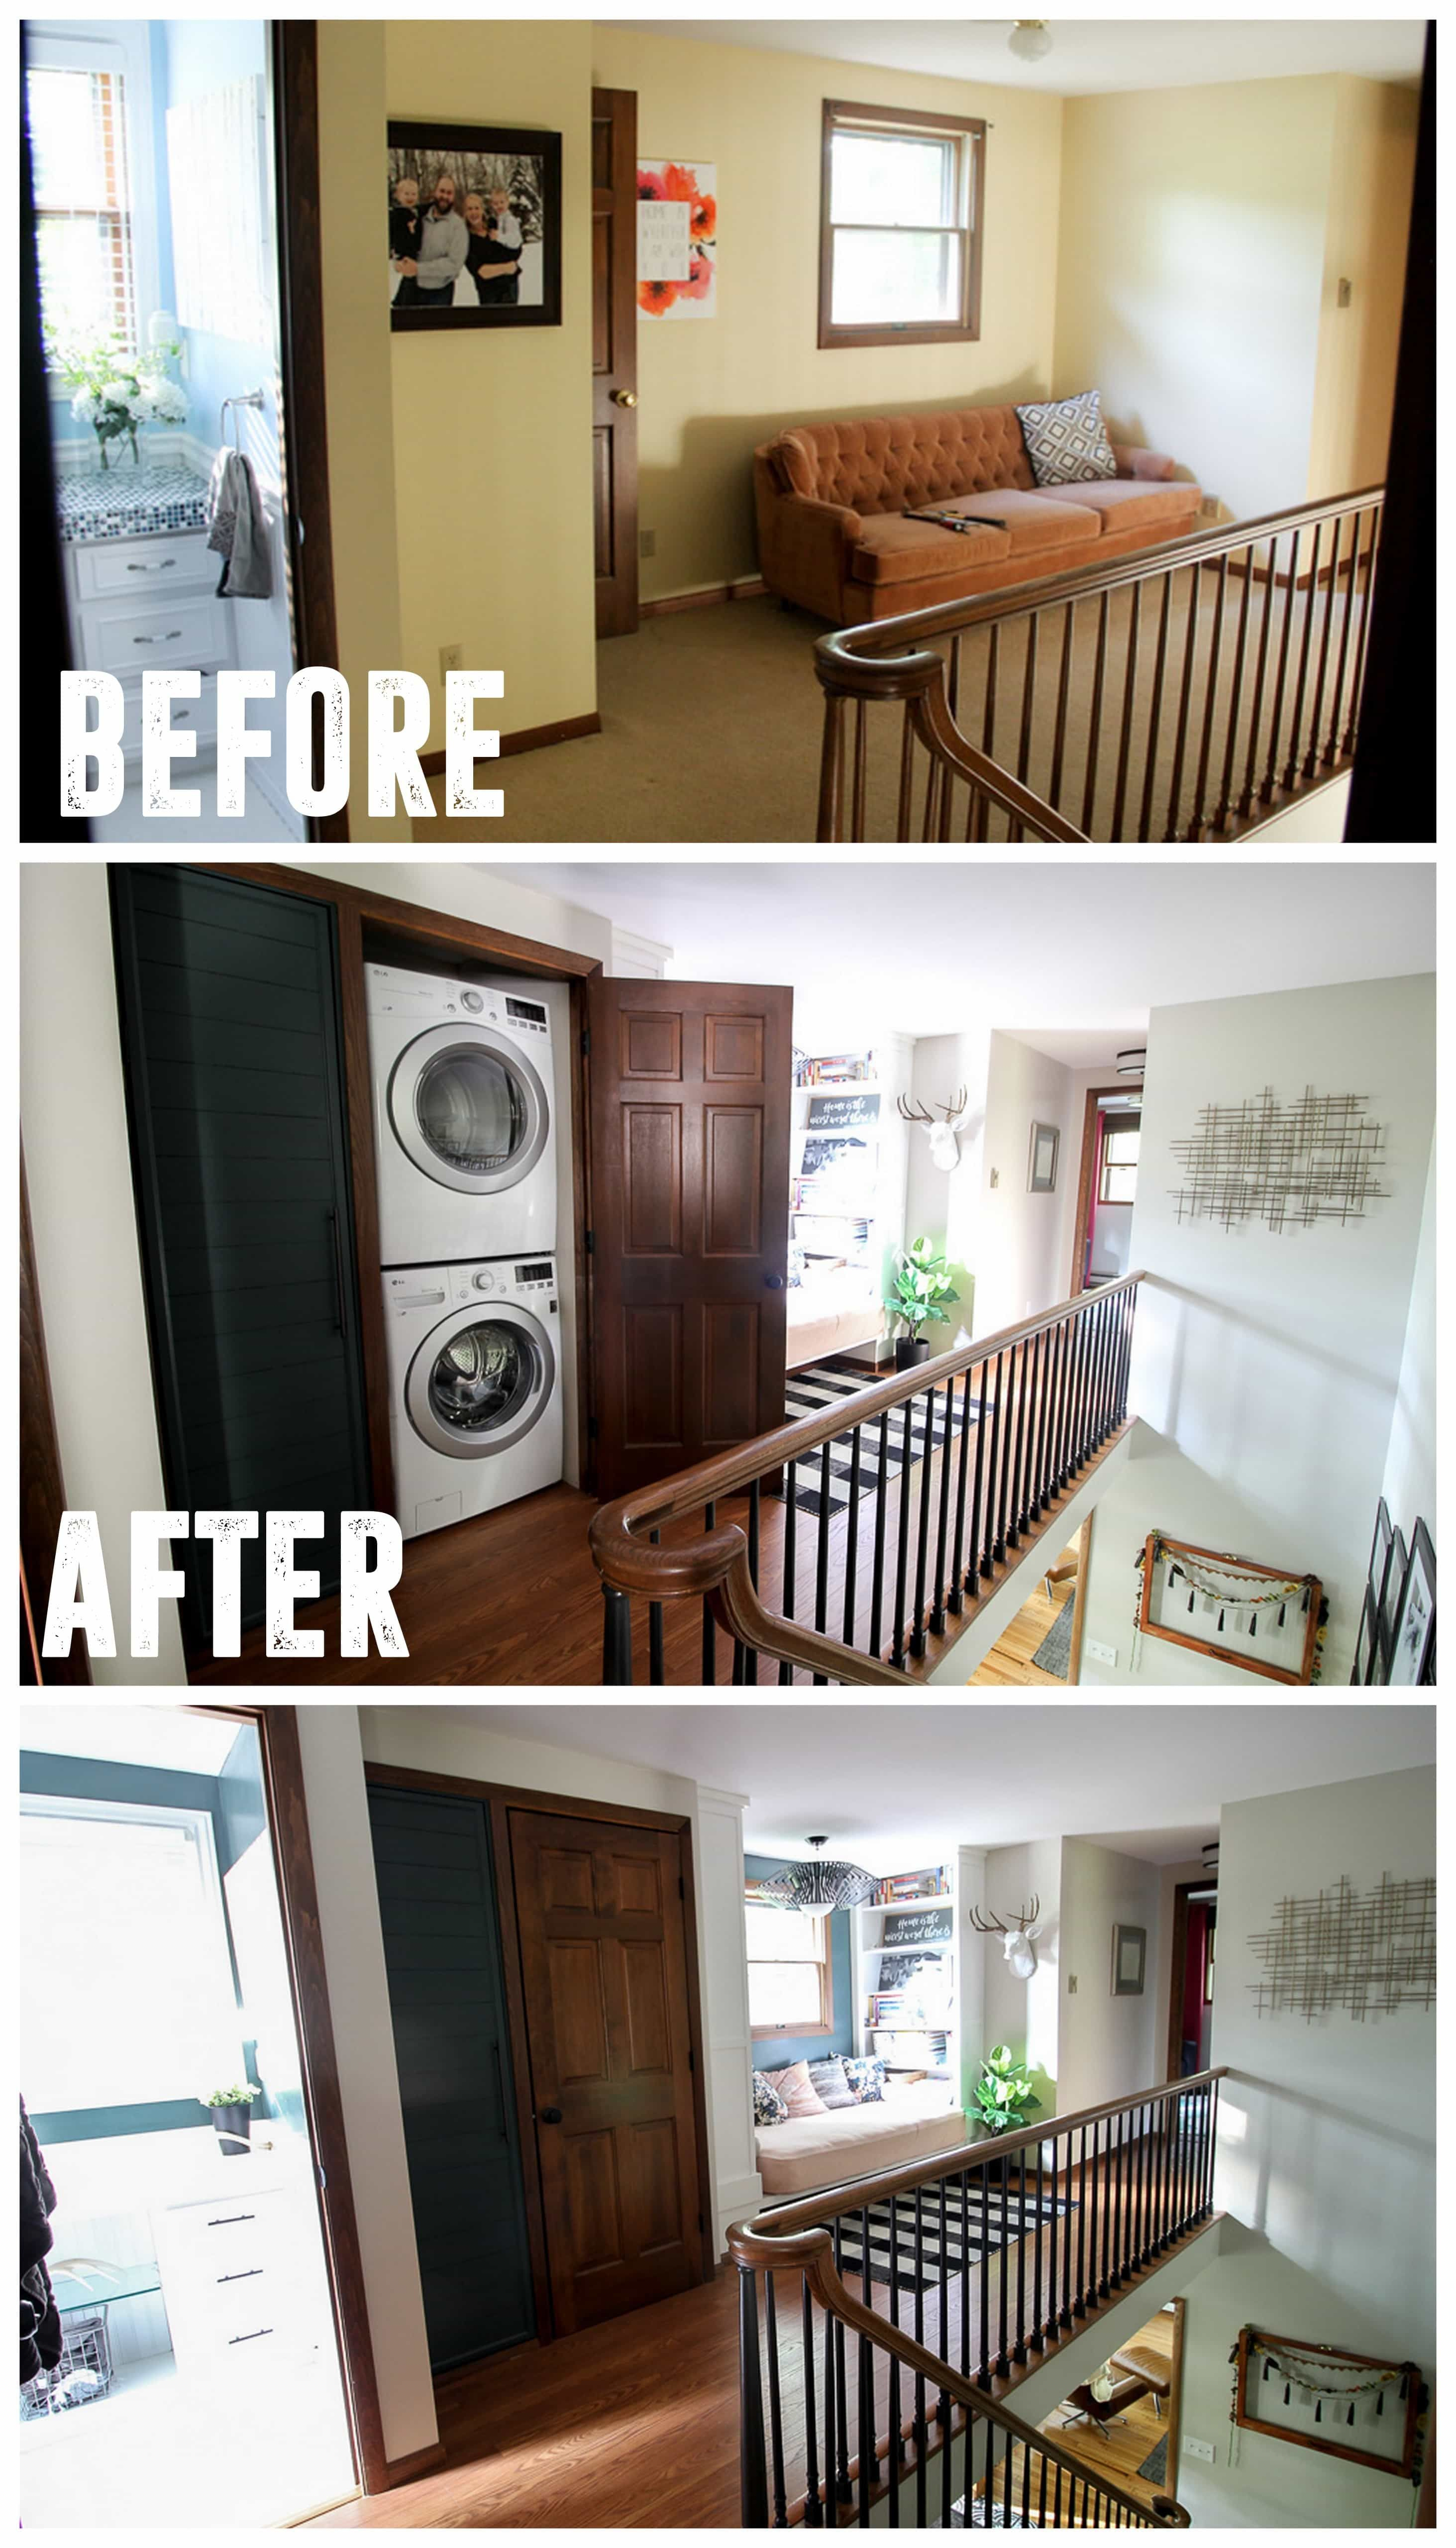 How We Built A Small Laundry Room In A Closet Laundry Room Storage Laundry Room Storage Shelves Small Laundry Room Organization